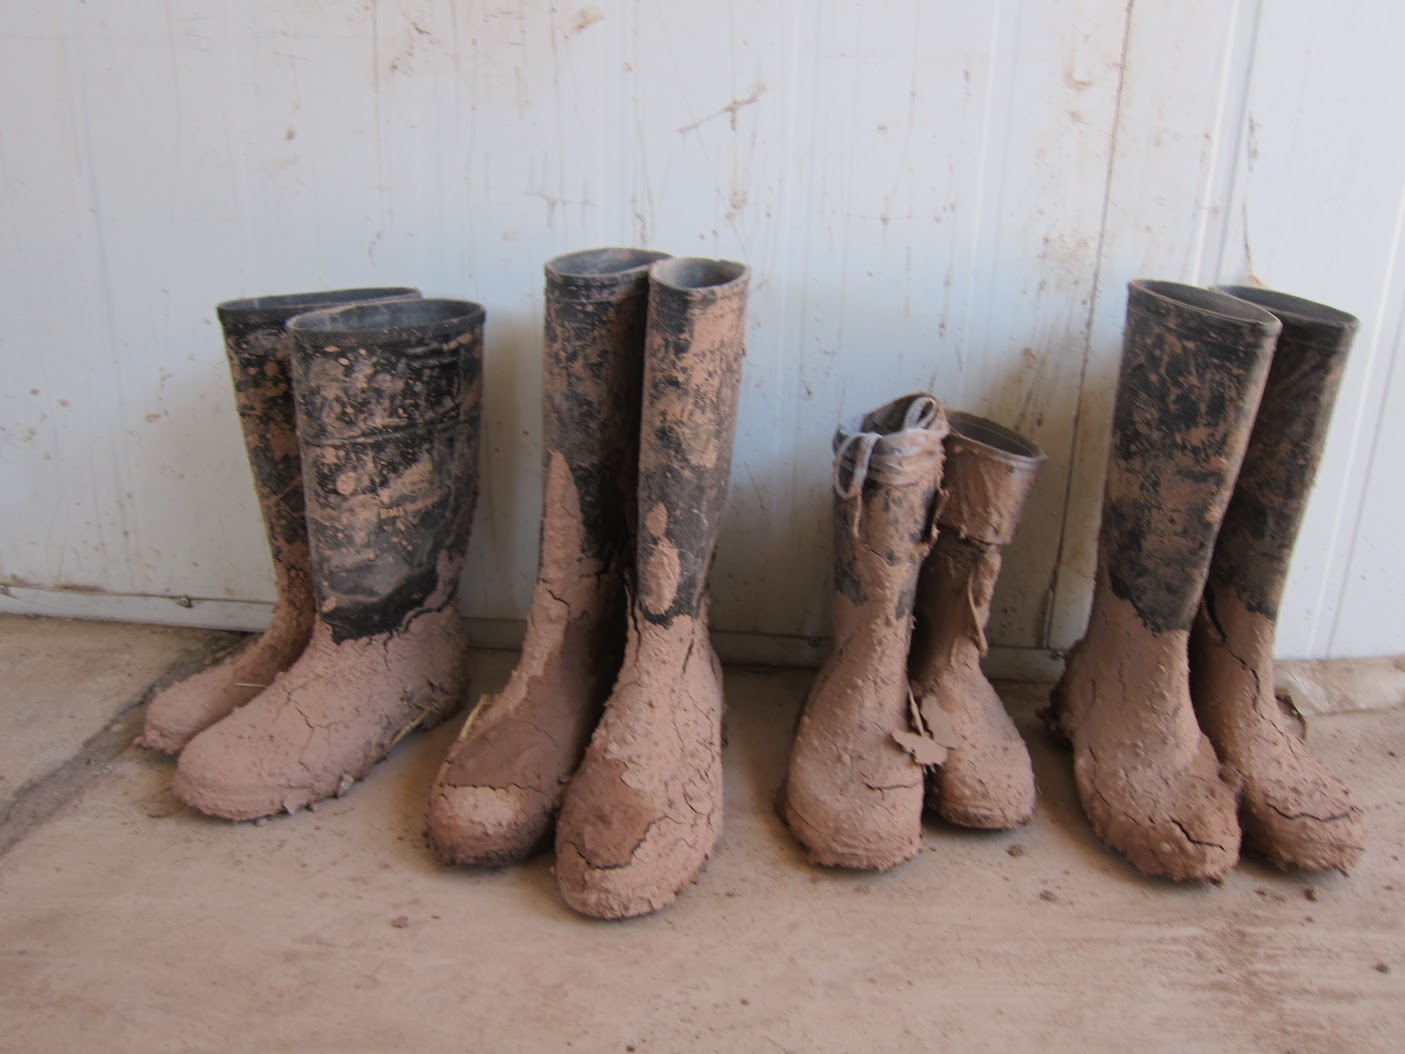 Final picture of the used mud boots